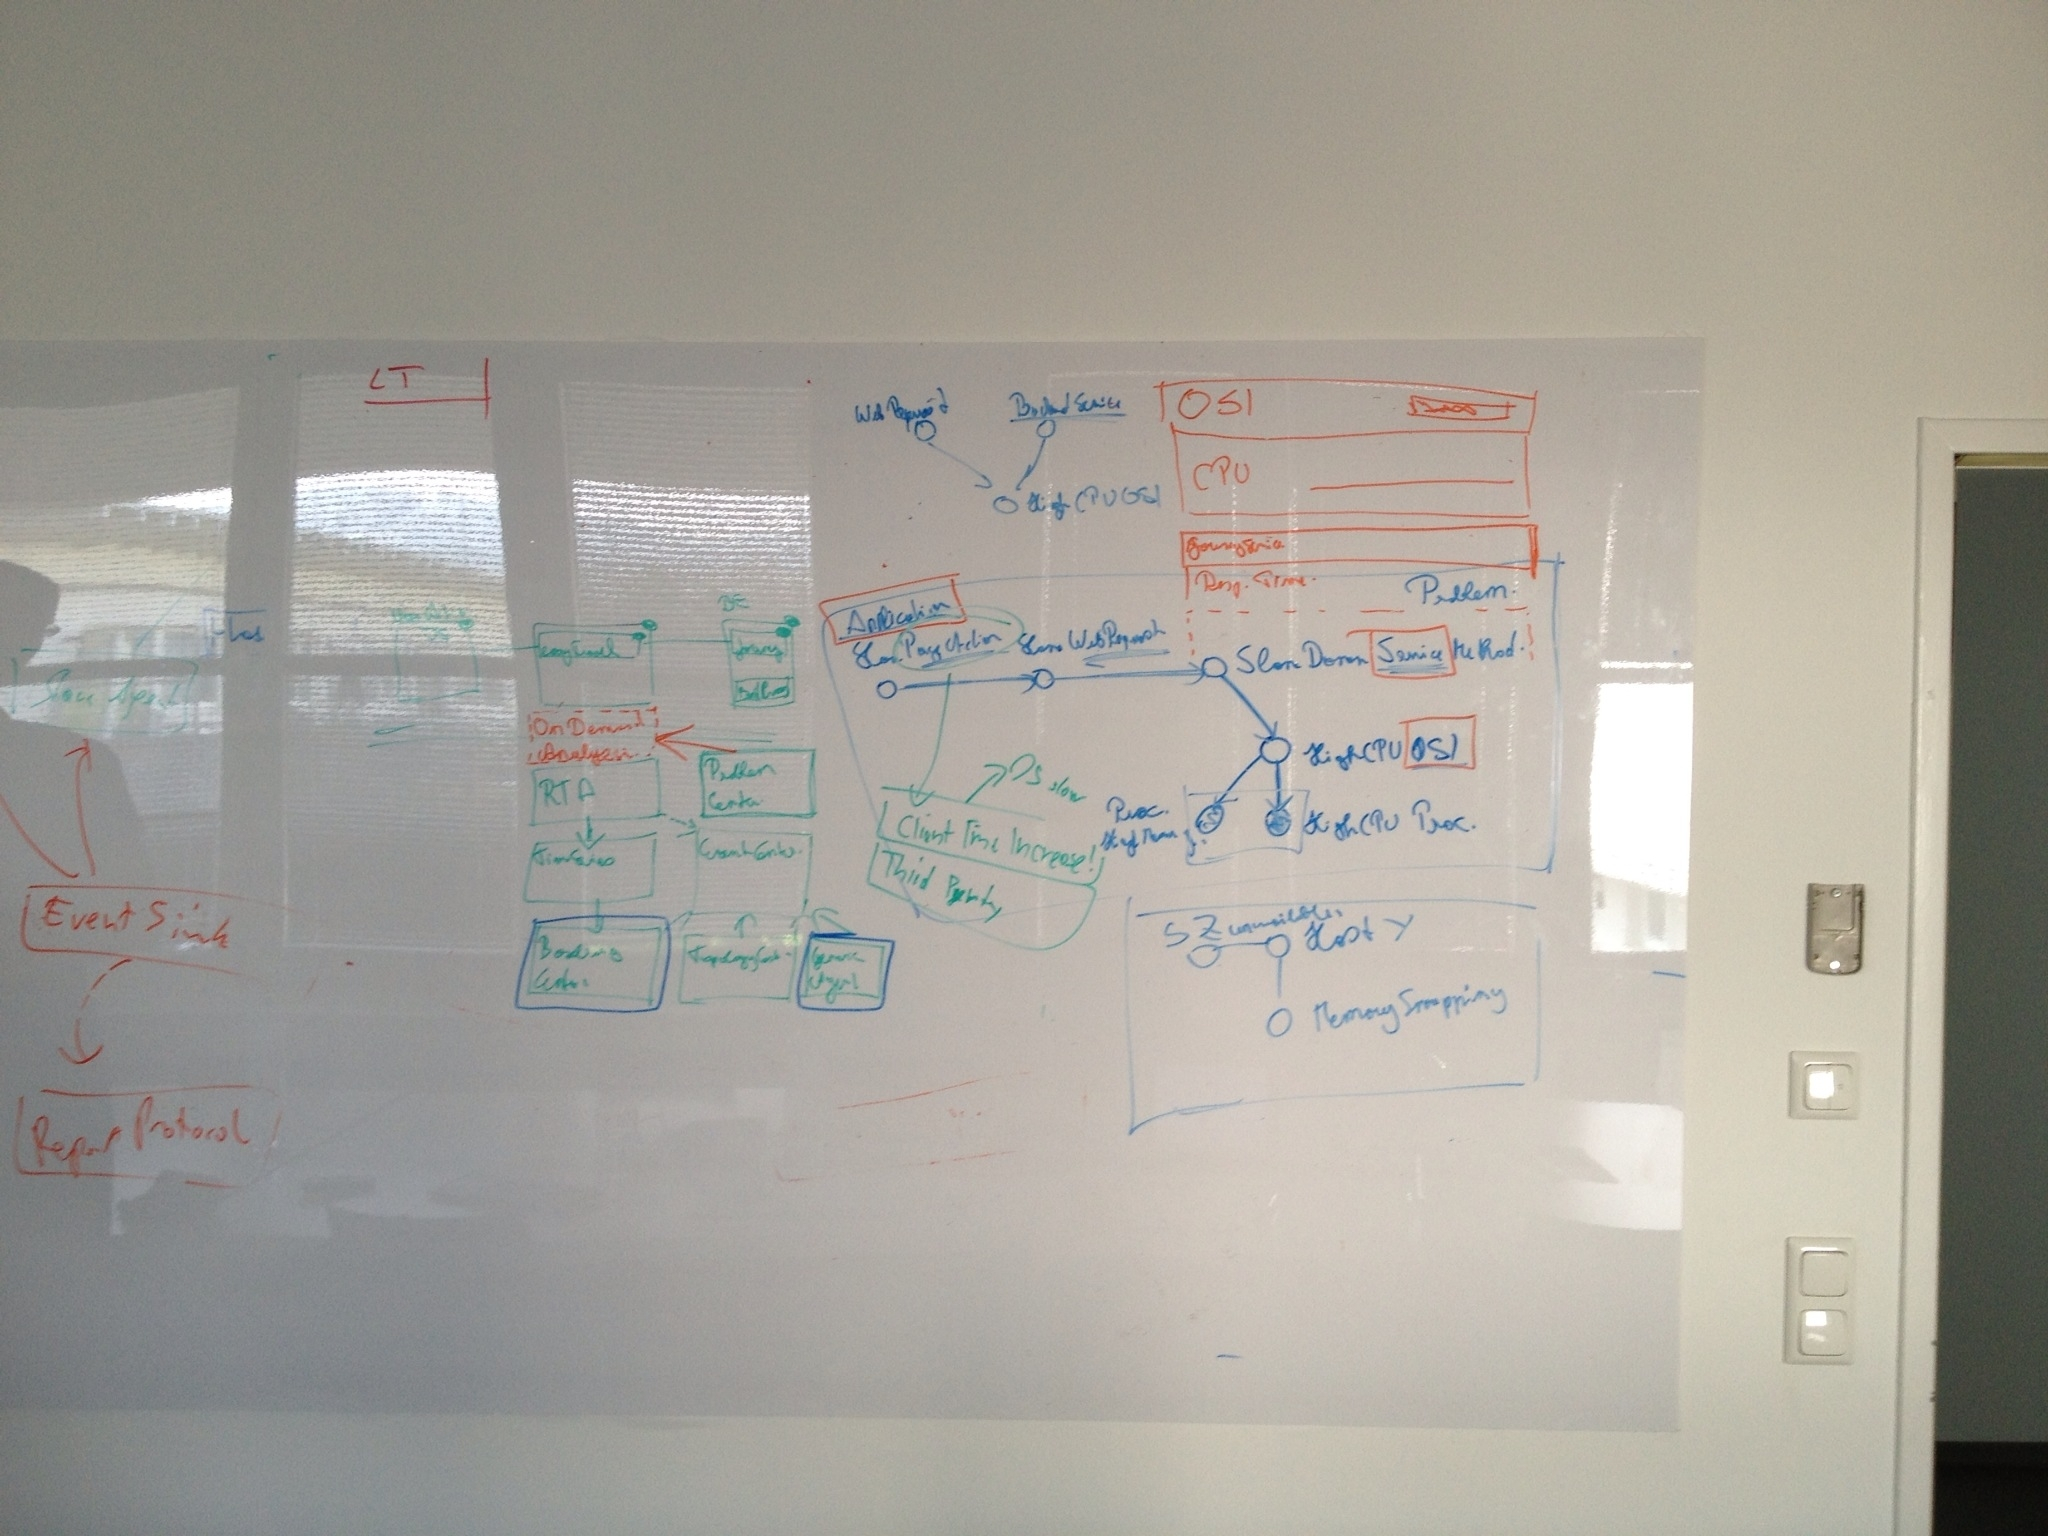 apm_ng_whiteboard